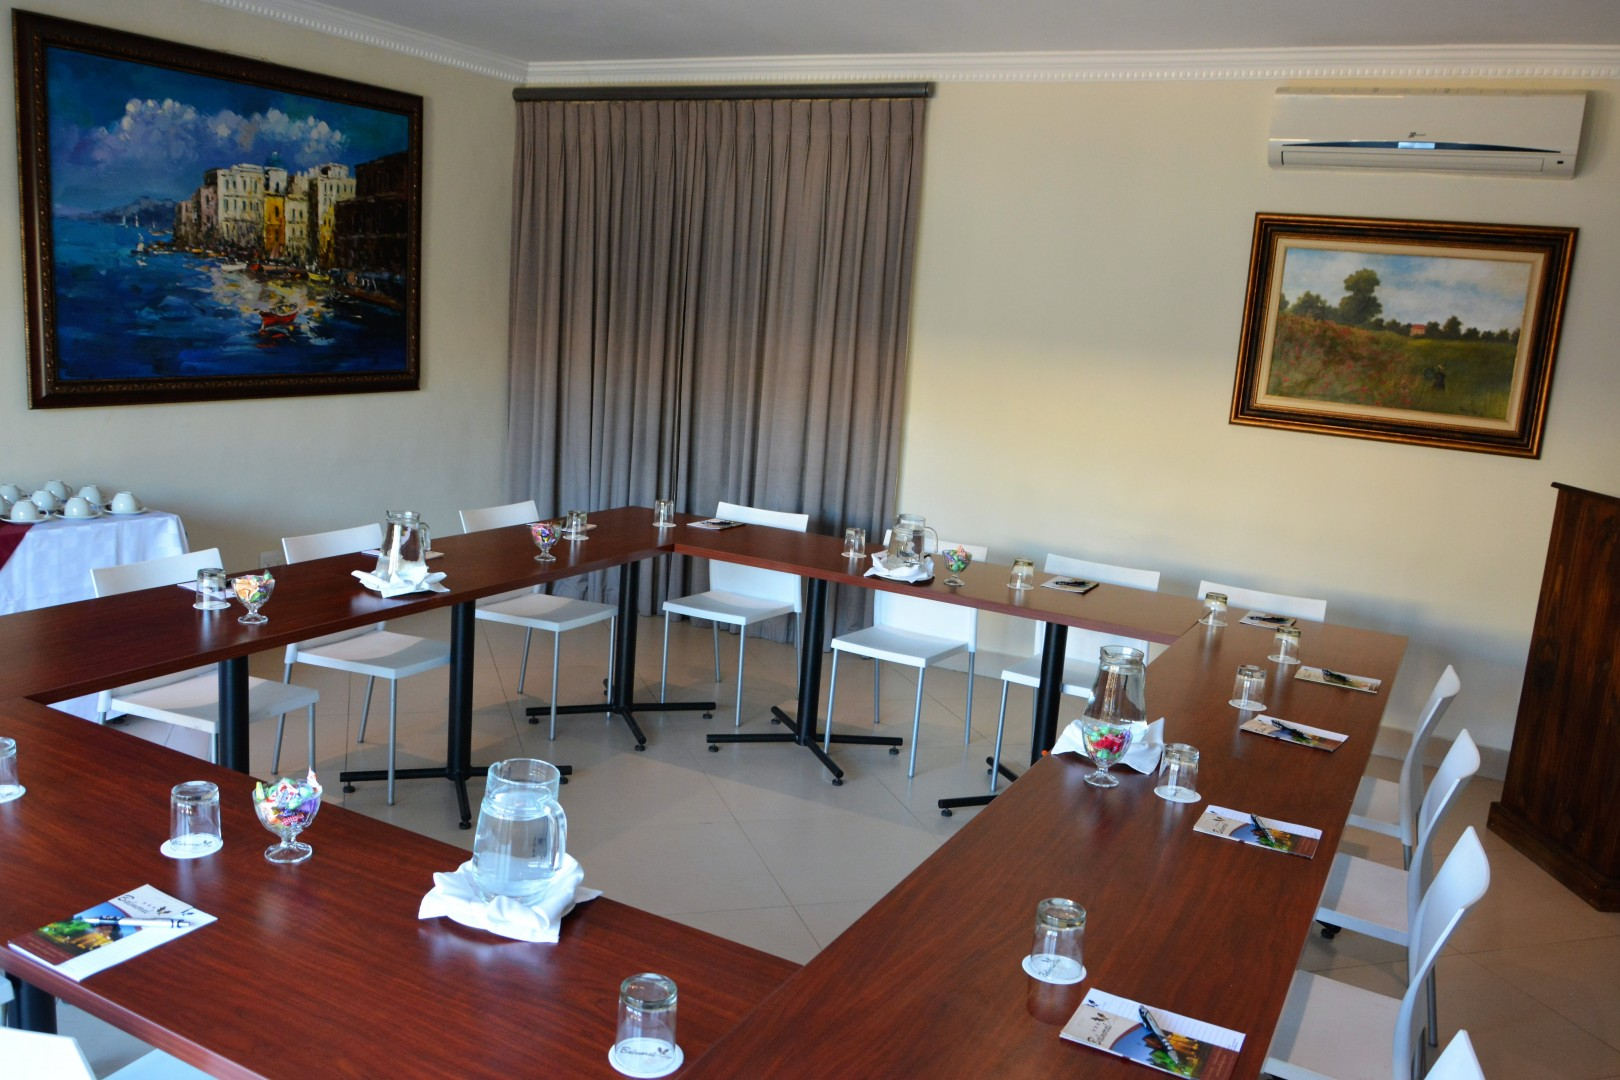 balmoral-lodge-conference-room-2